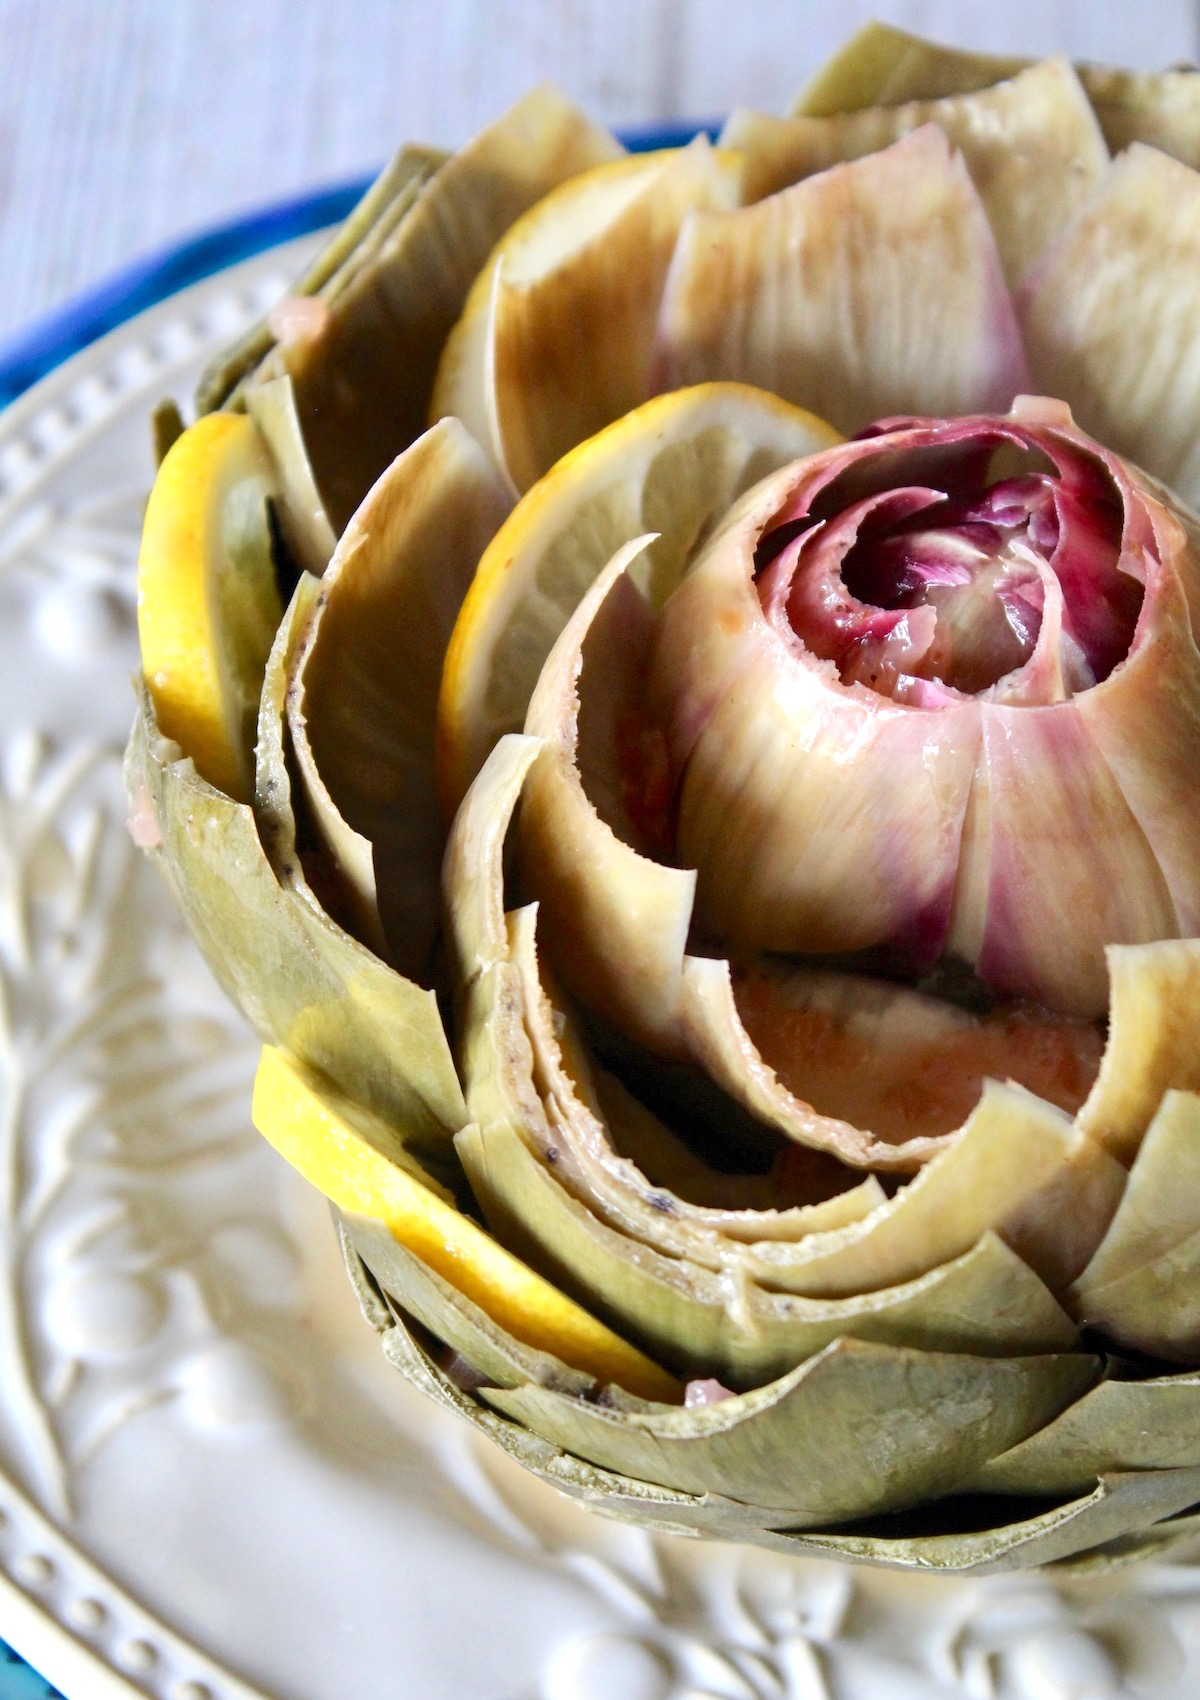 Steamed artichoke with lemons slices between the leaves on a white plate